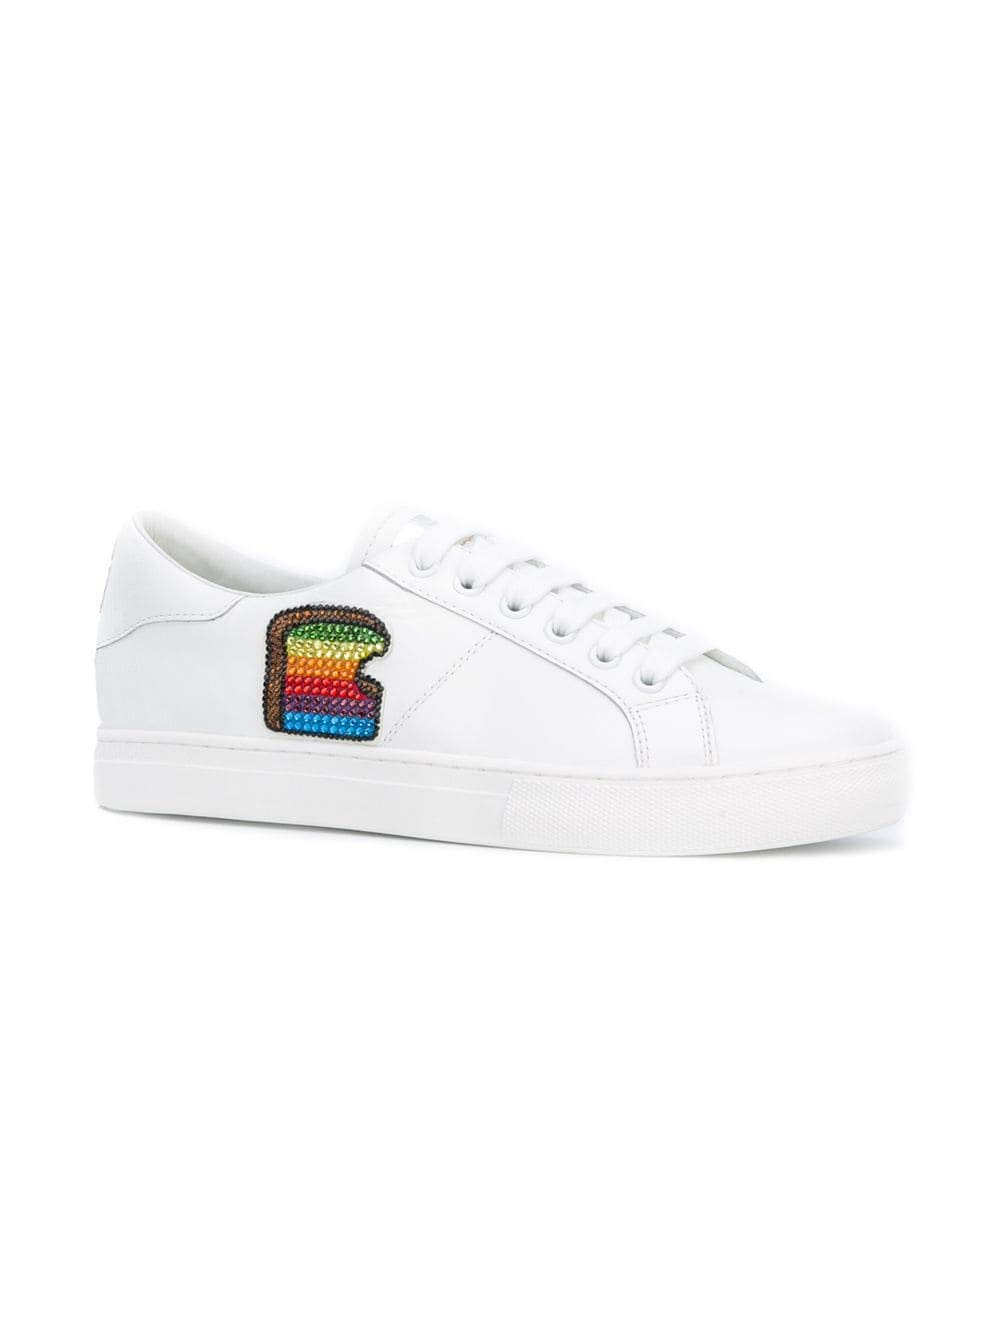 Marc Jacobs Womens Empire Sneakers